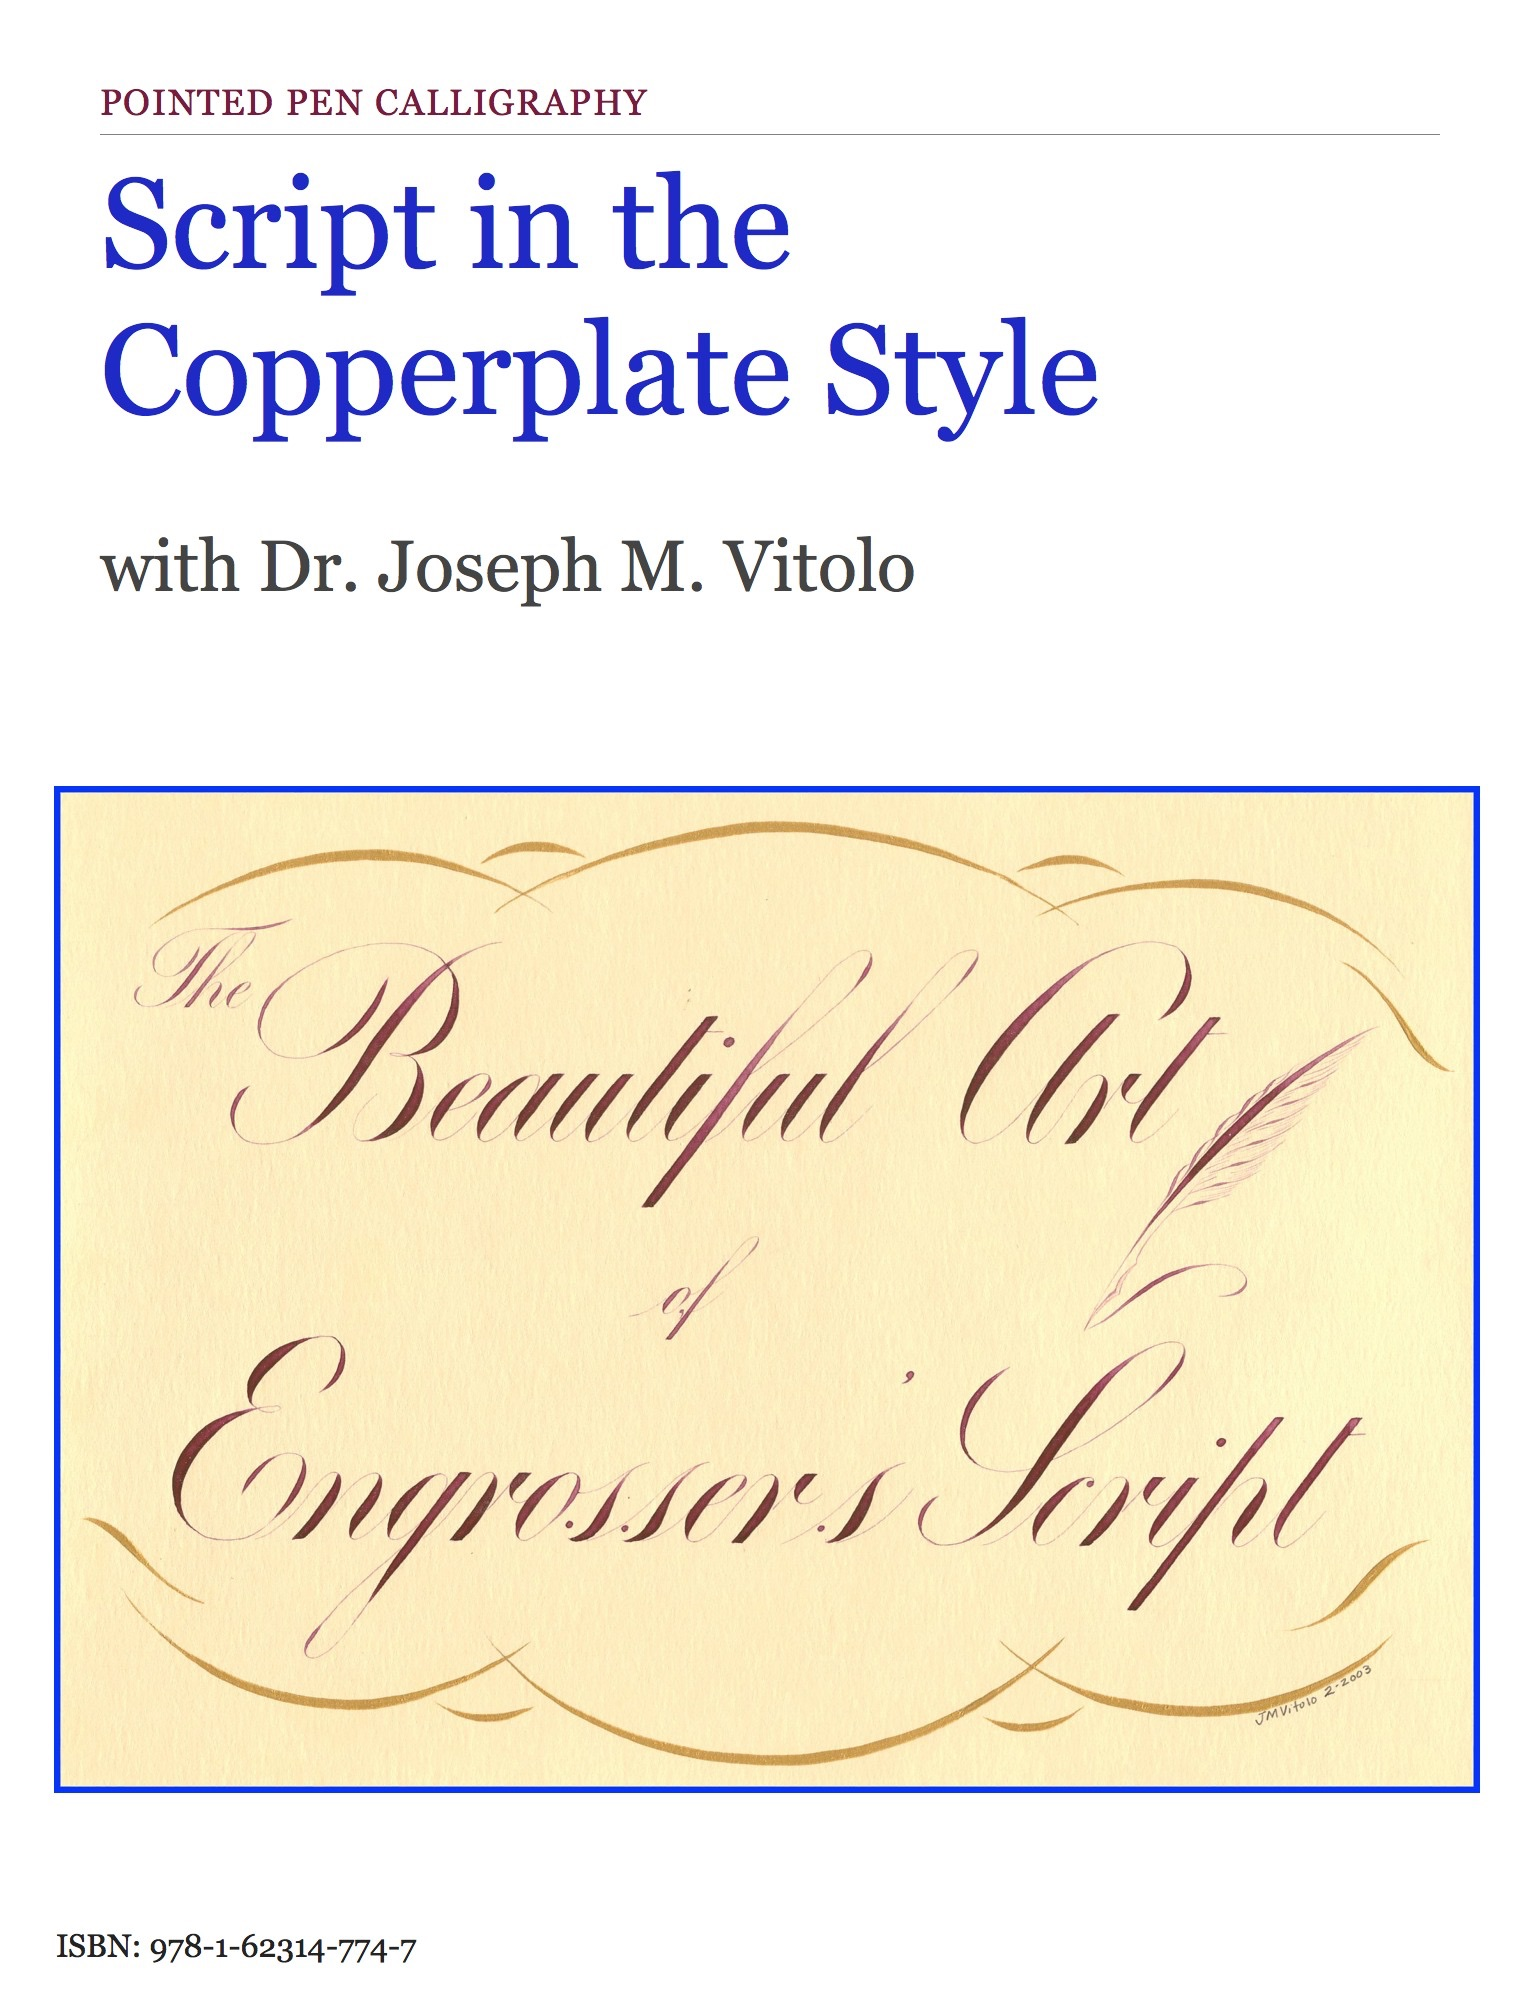 Script in the Copperplate Style by Dr. Joseph M. Vitolo on iBooks